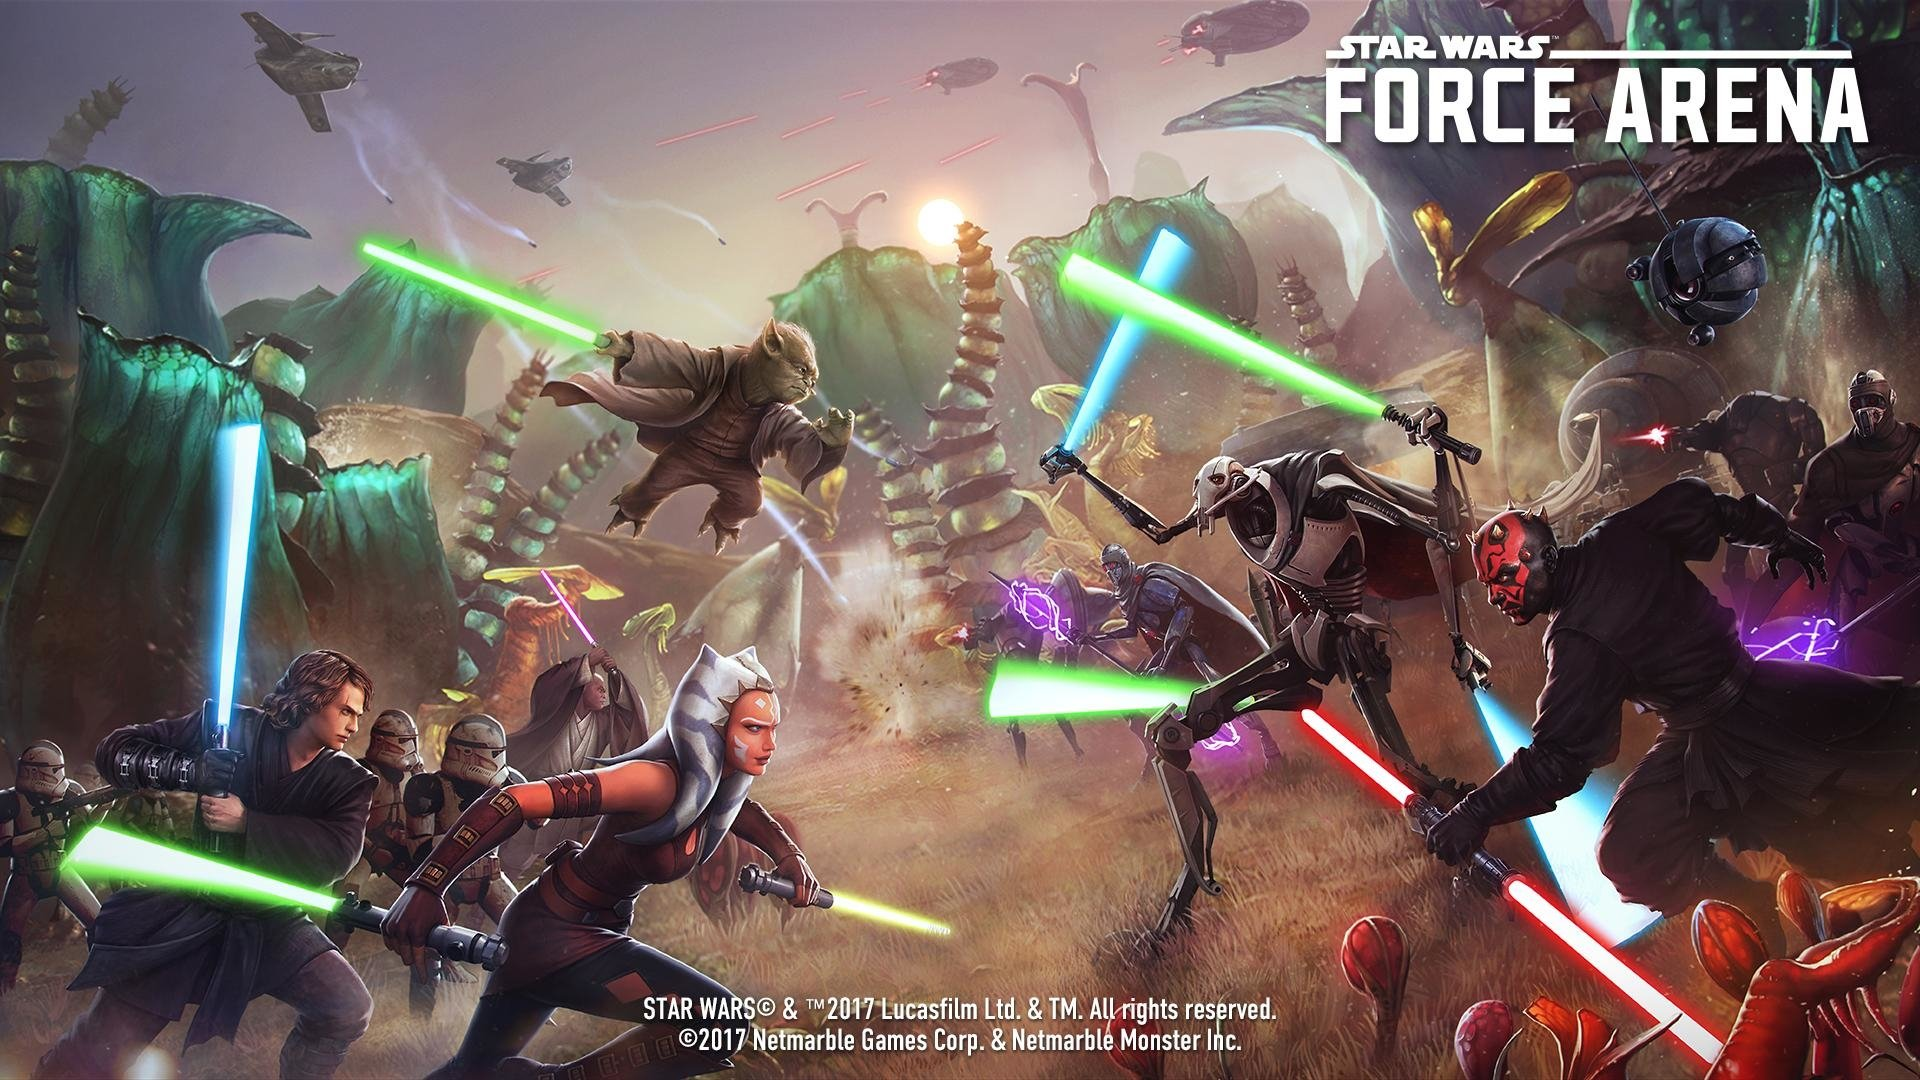 Star Wars Force Arena Hd Wallpaper Background Image 1920x1080 Id 901267 Wallpaper Abyss